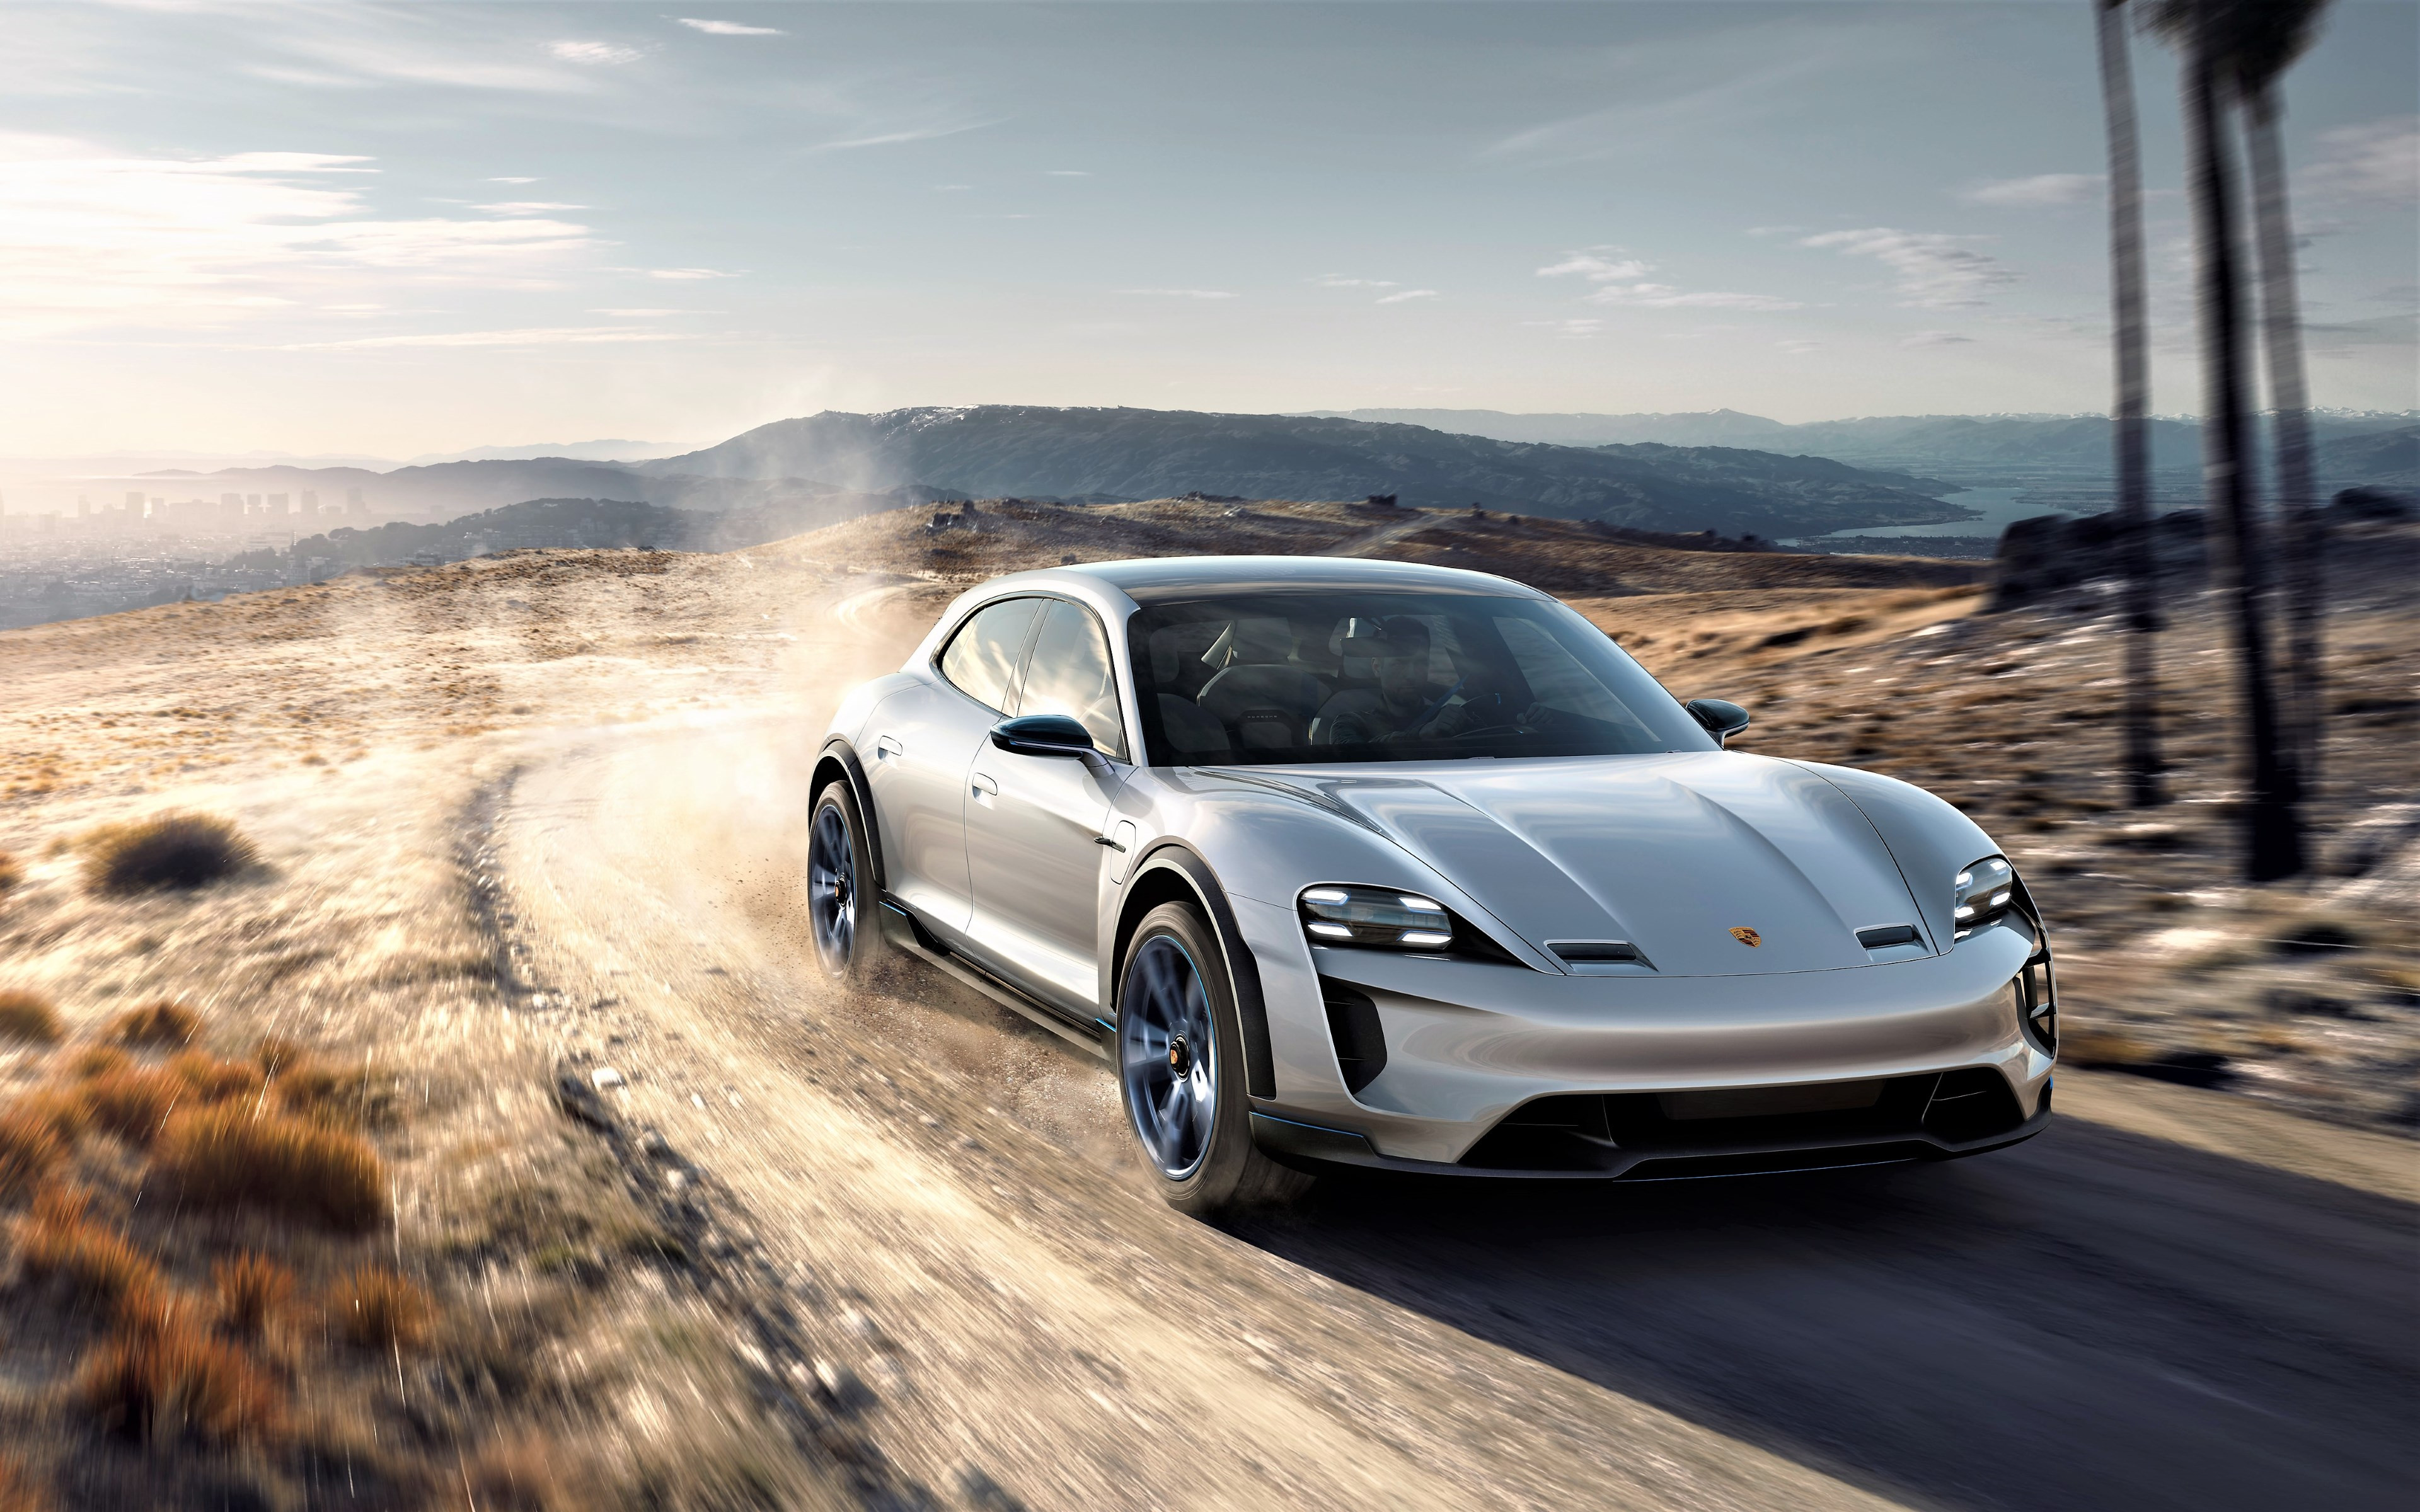 Porsche Mission E 2019 wallpaper 3840x2400